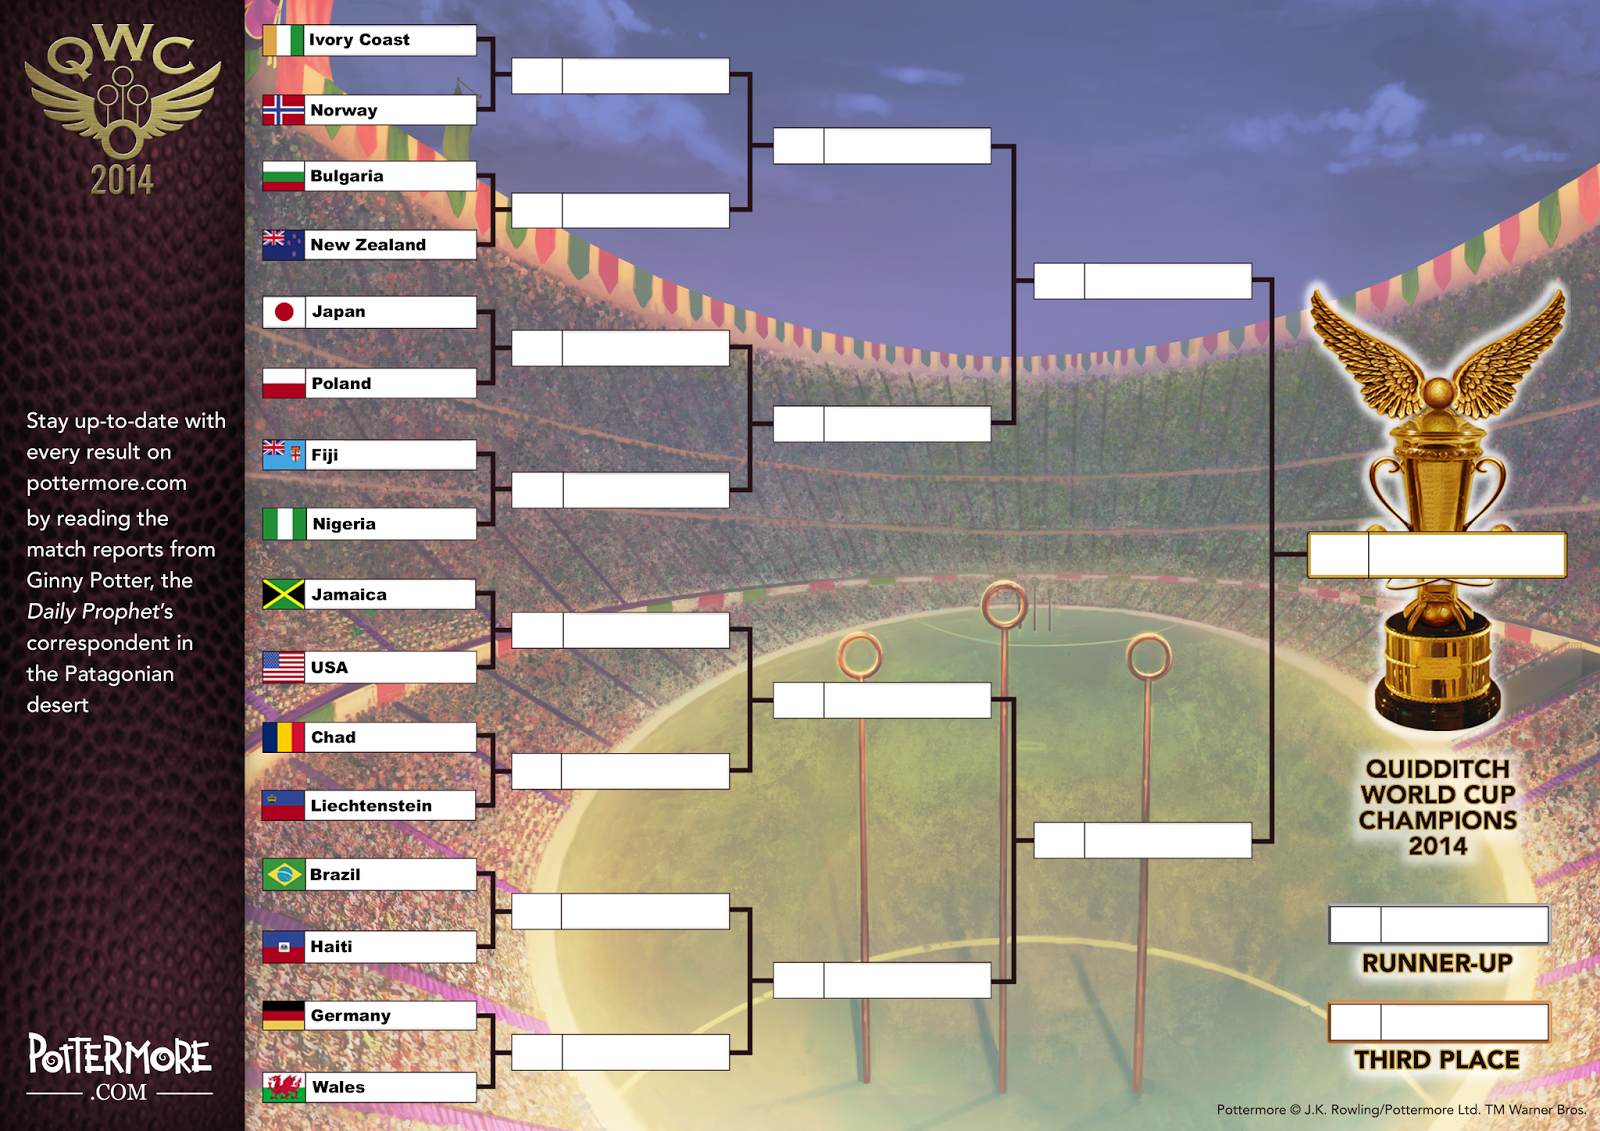 Copa Mundial de Quidditch | Harry Potter Wiki | FANDOM powered by Wikia